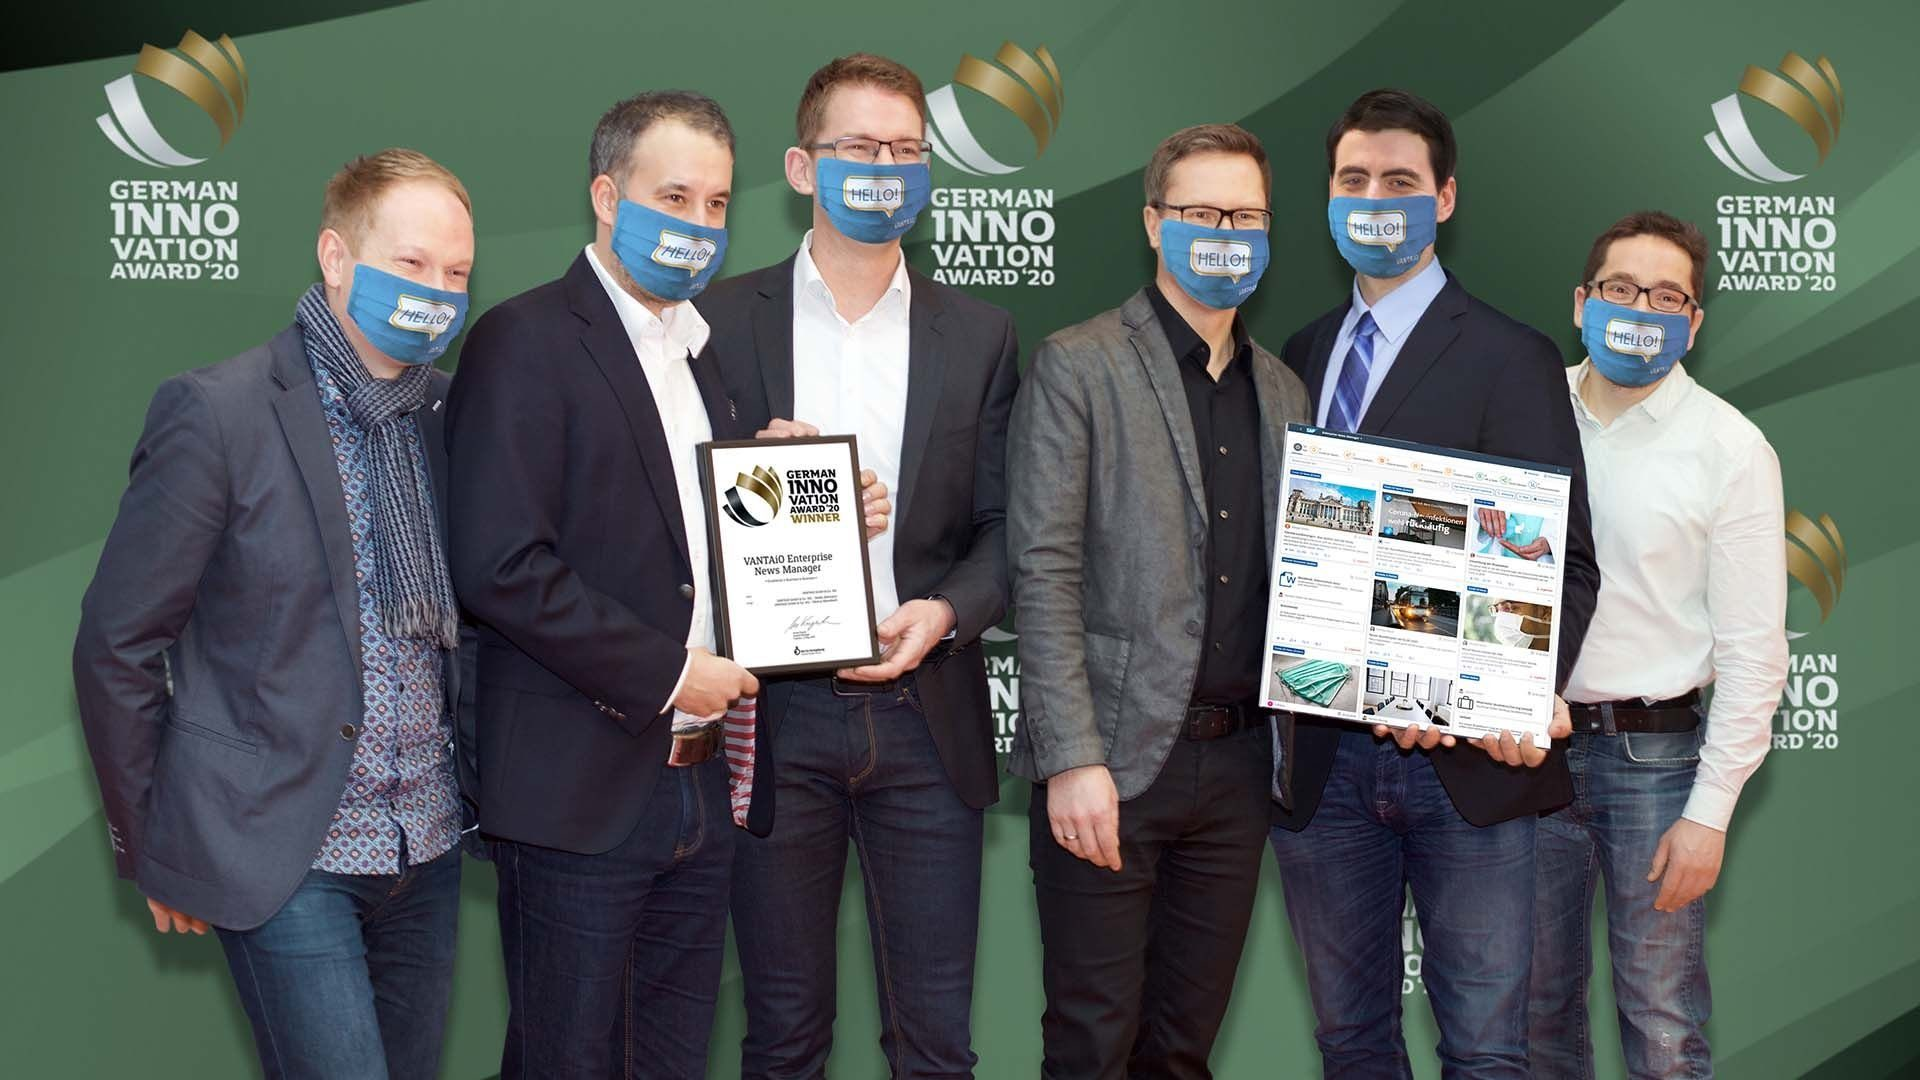 Das stolze Gewinner-Team vor der Digital-Photo-Wall des German Innovation Award